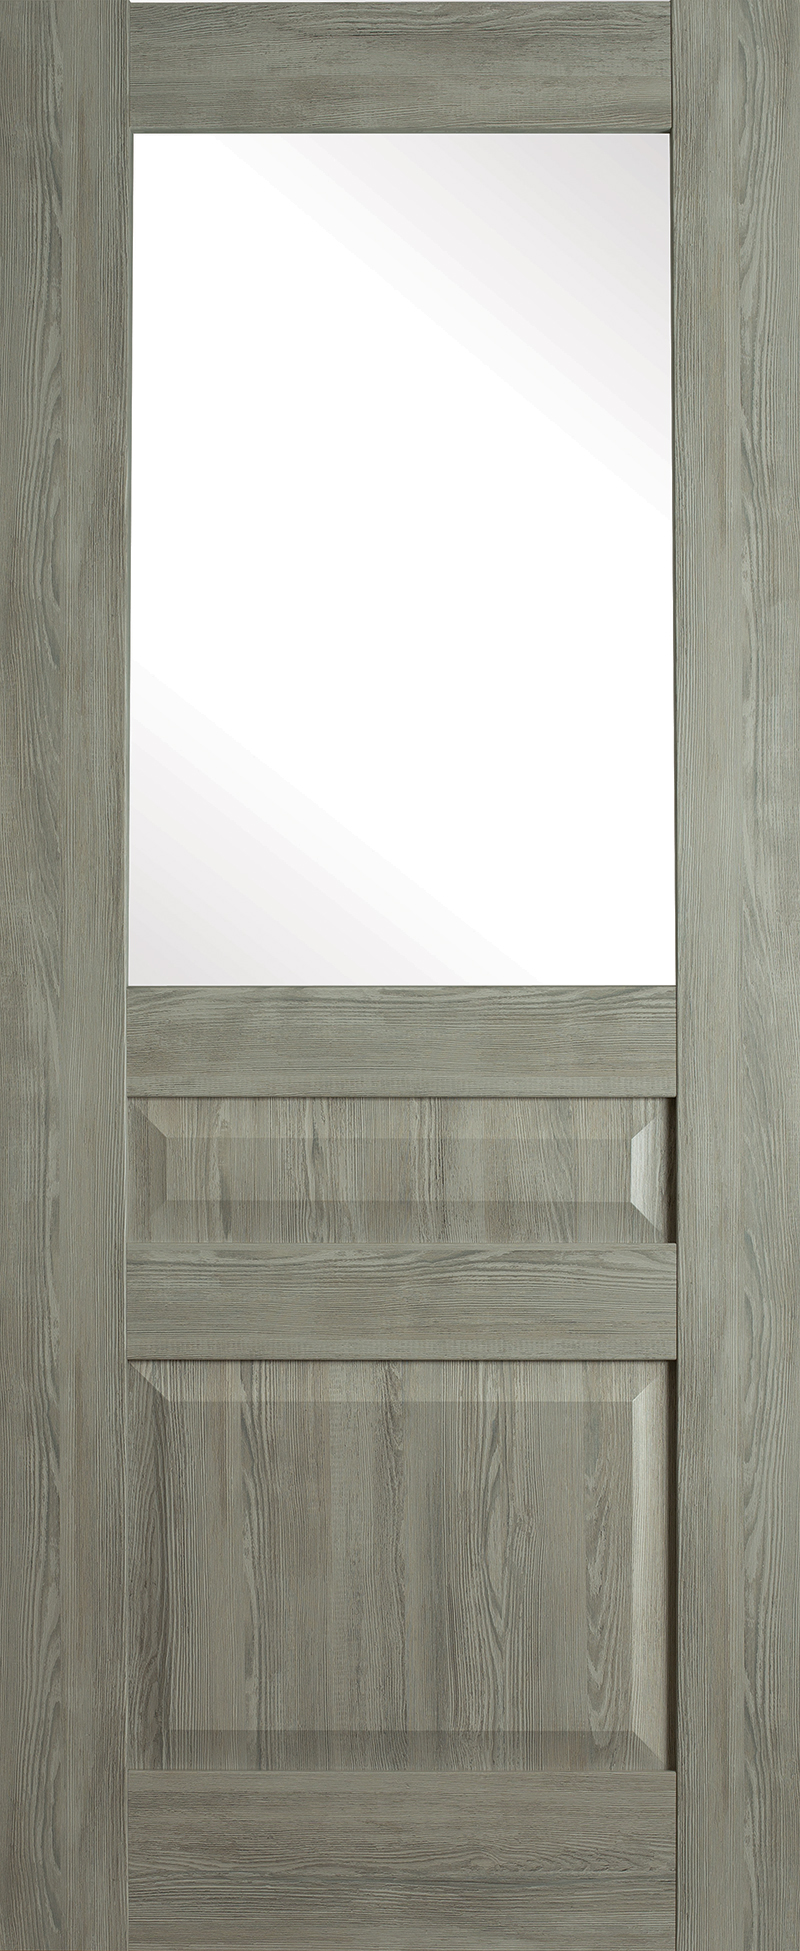 Haven-laminate-mist-grey-clear-glass